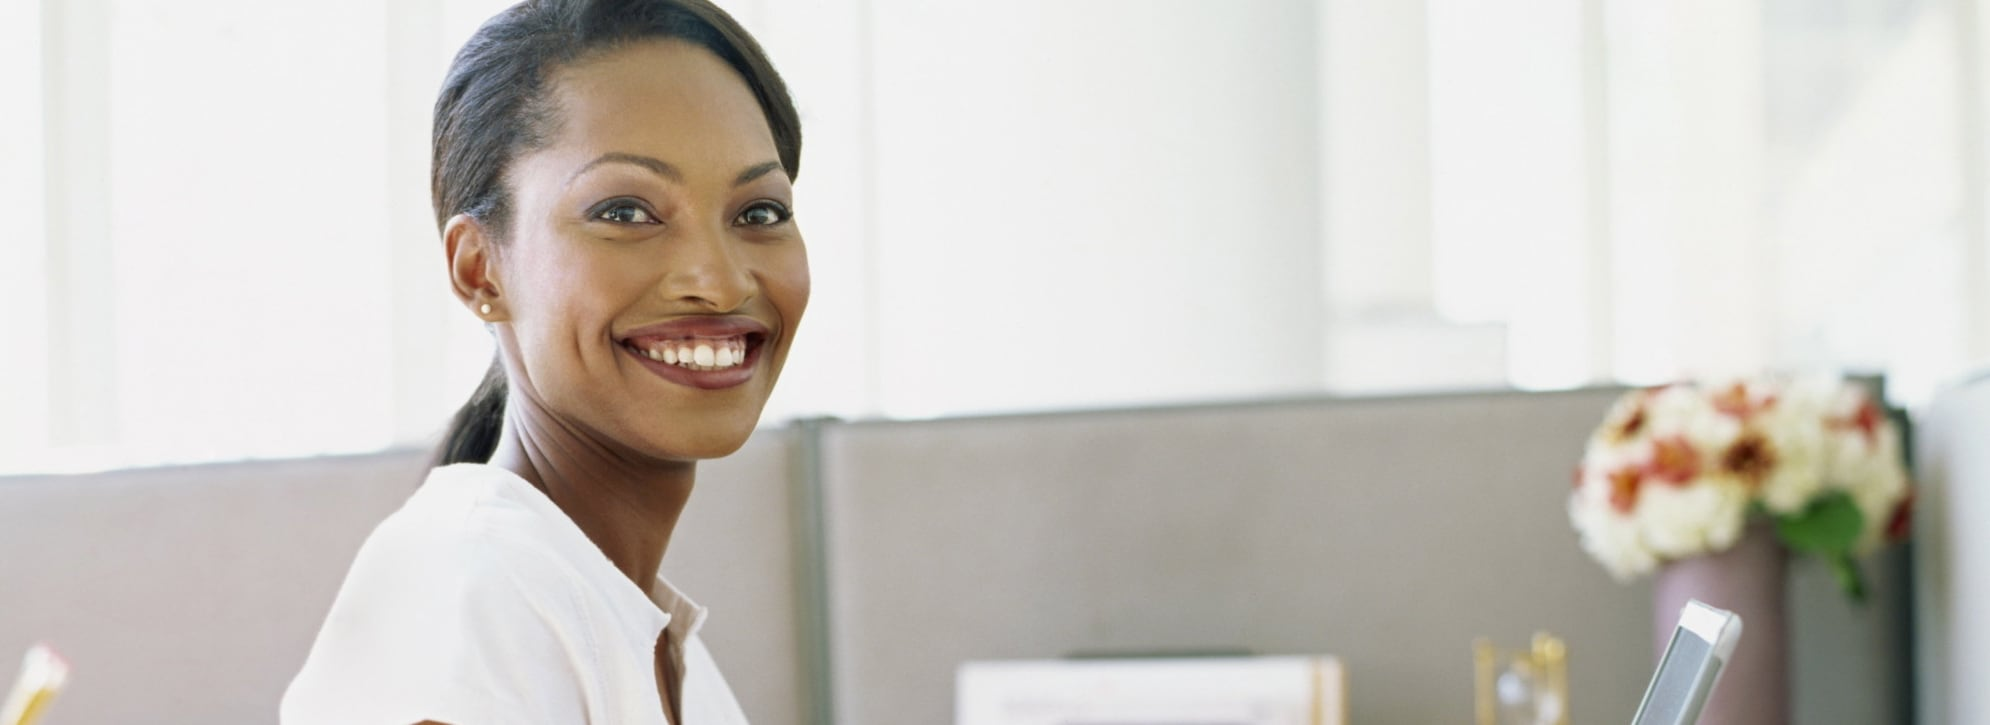 10 Secrets to a Happier Work Life